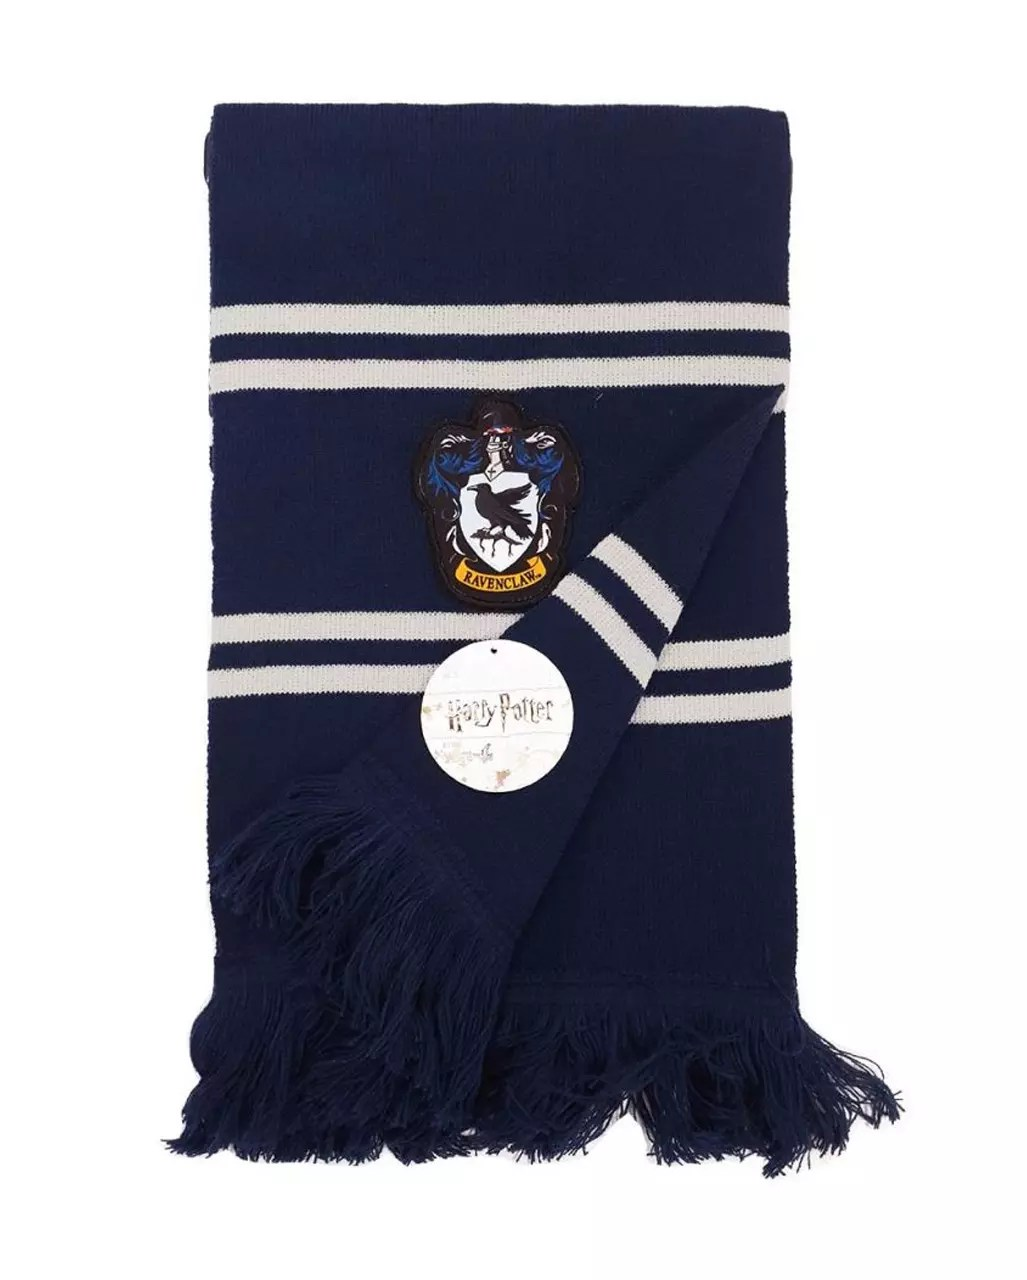 Harry Potter Welches Haus Ravenclaw Haus Schal Blau Weiß Harry Potter